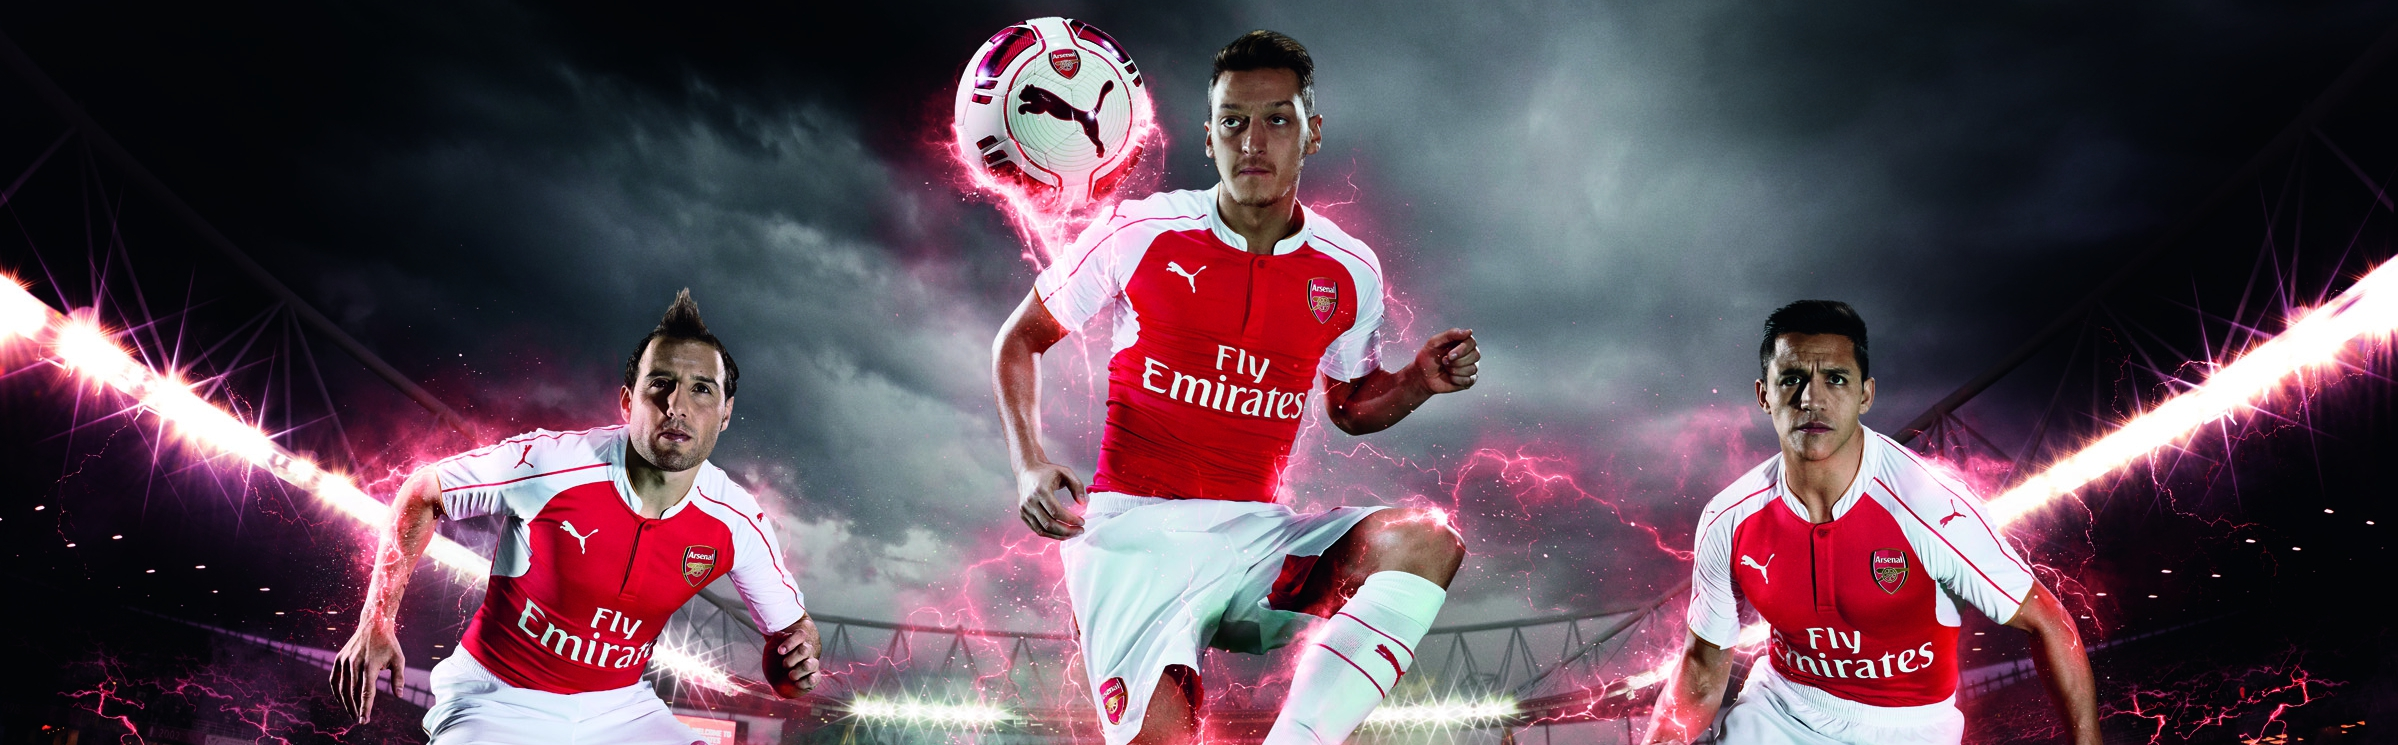 arsenal-header-rev